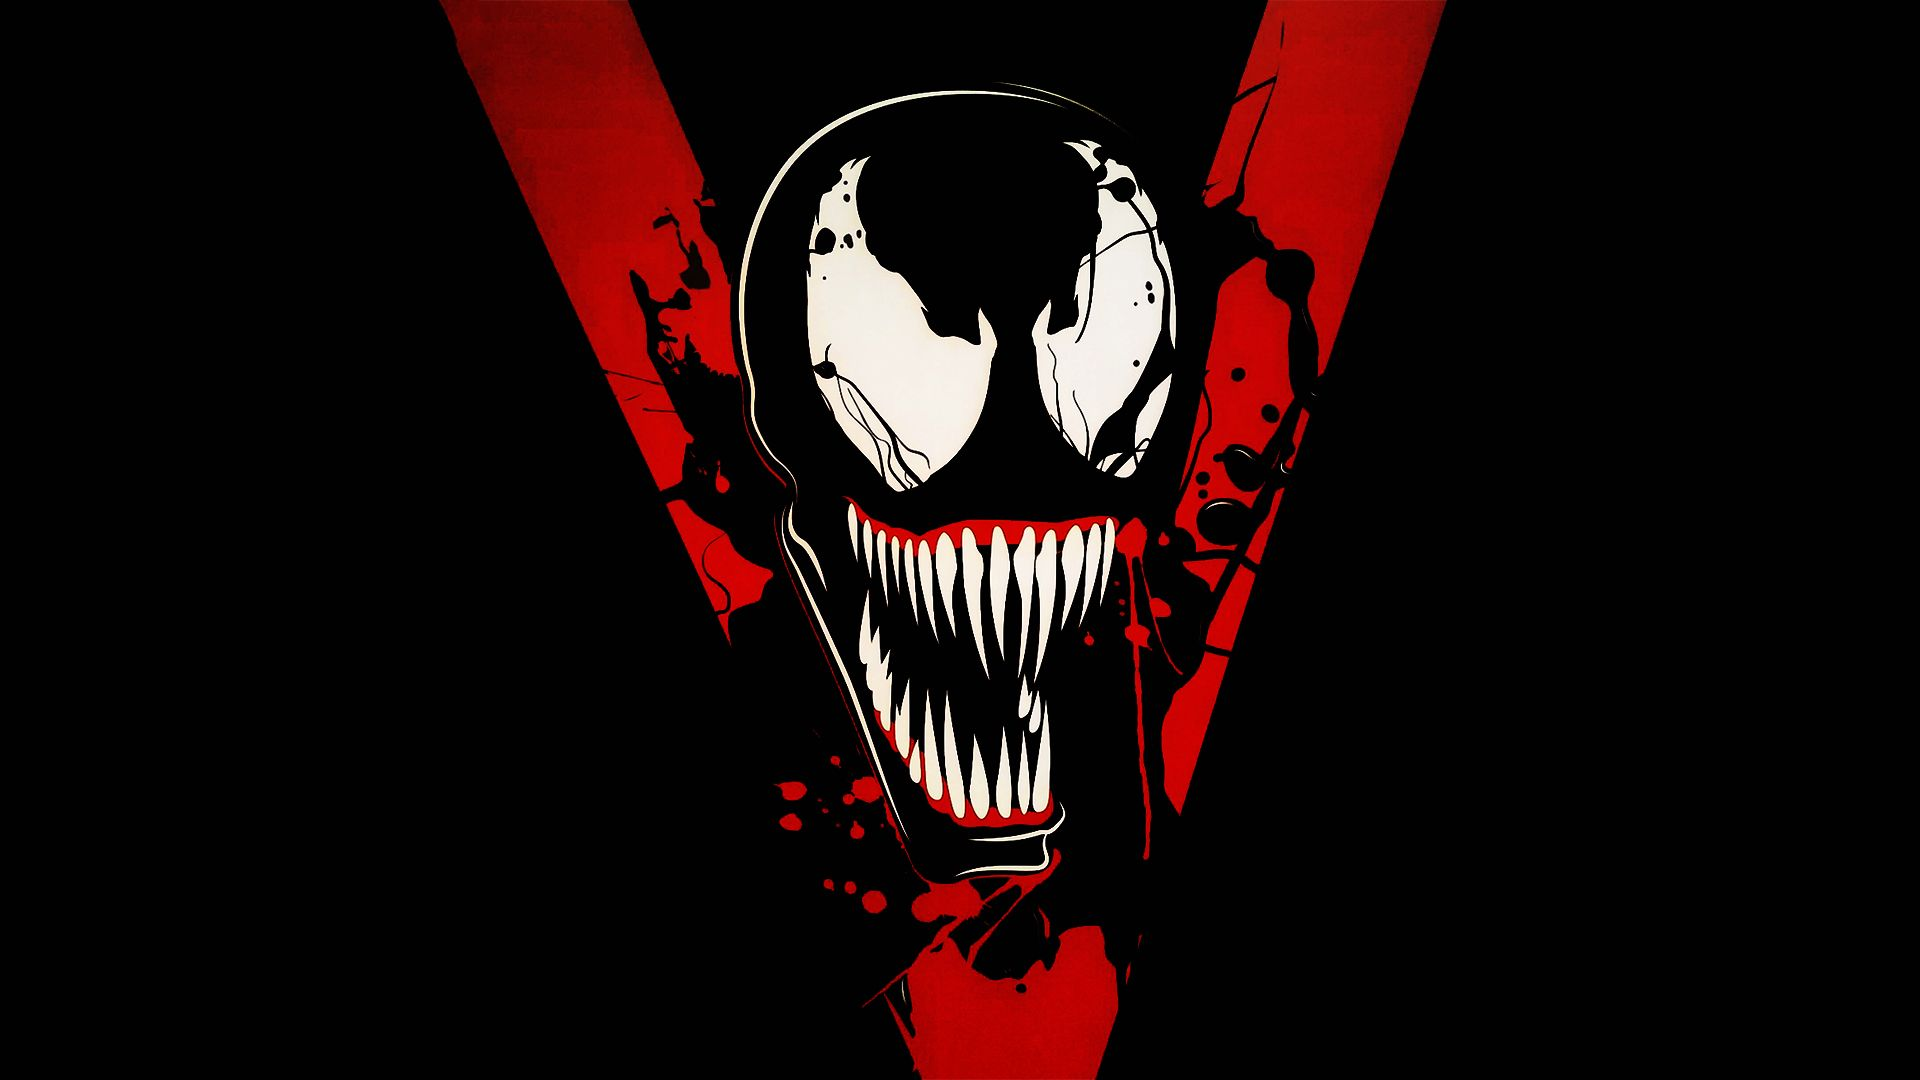 venom wallpaper 1920x1080, venom hd wallpapers